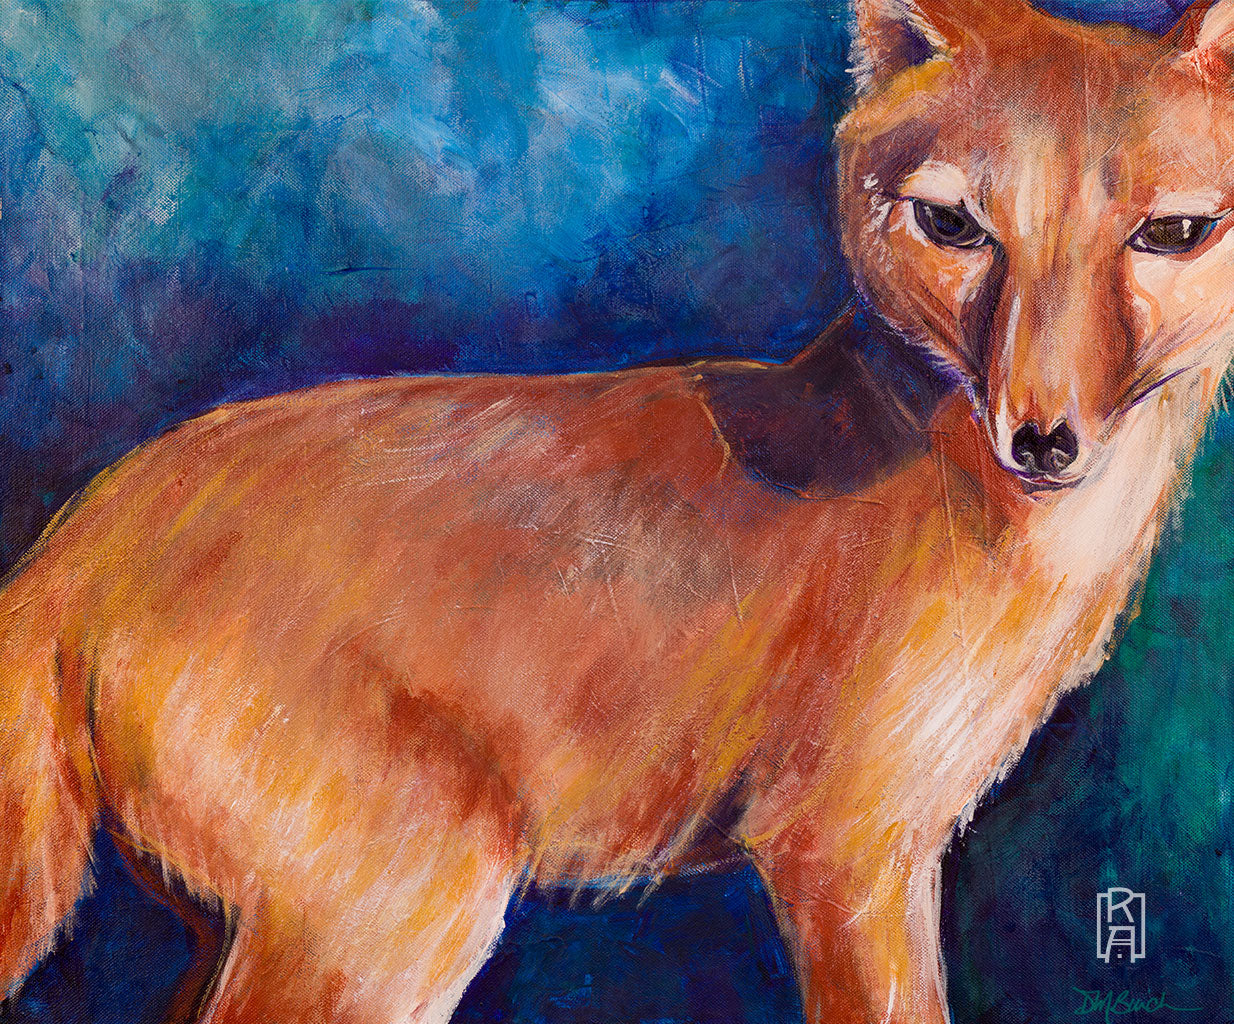 Red Fox | Painting by Denise Marta-Burch